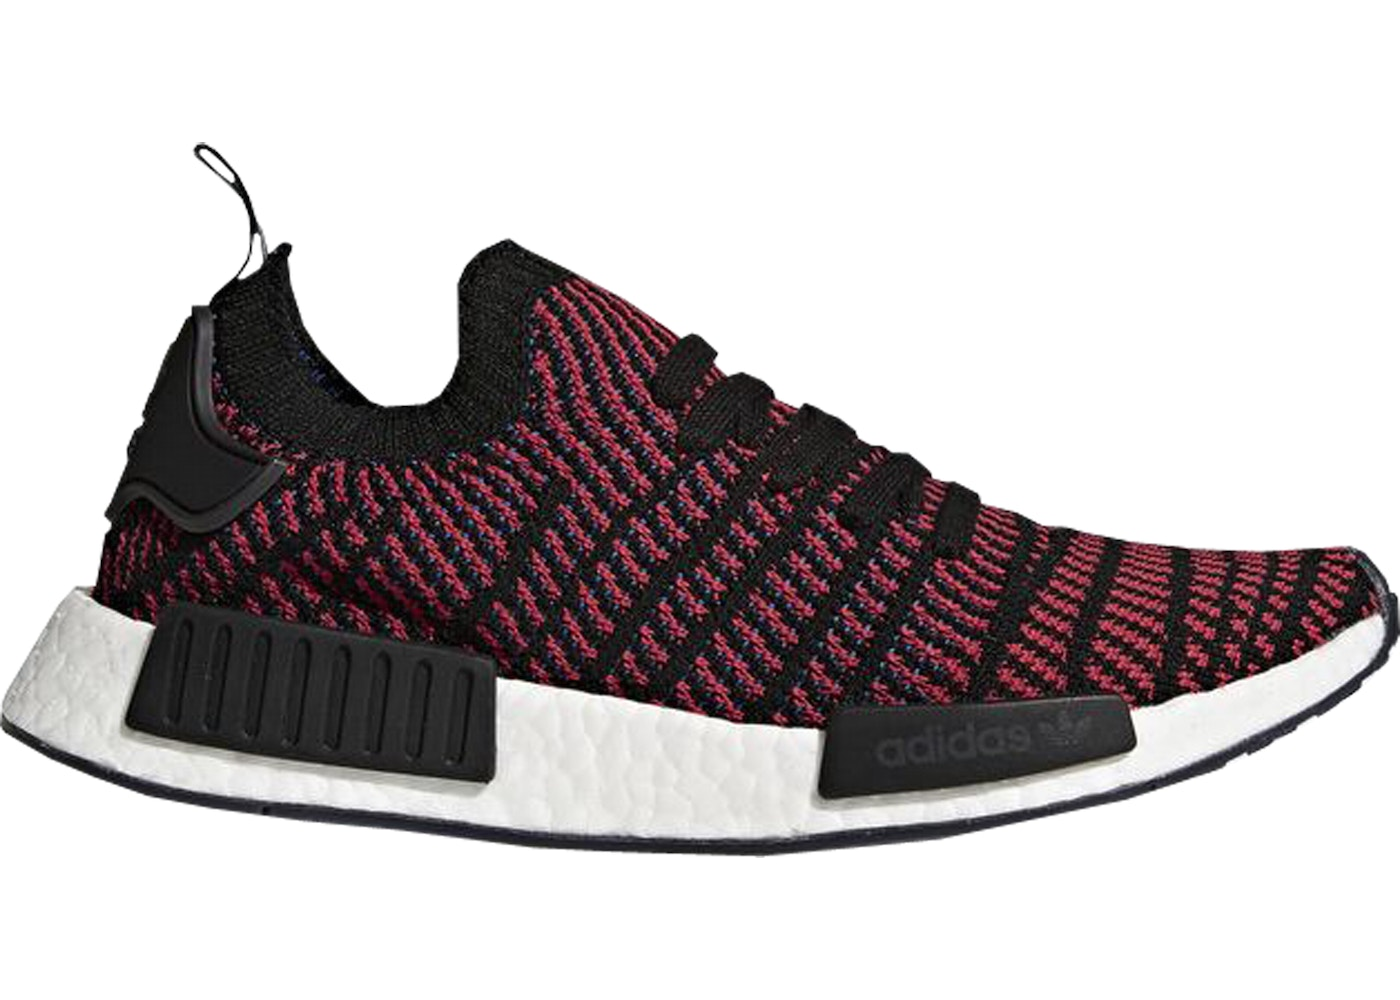 961284c07 adidas NMD R1 STLT Black Red - CQ2385